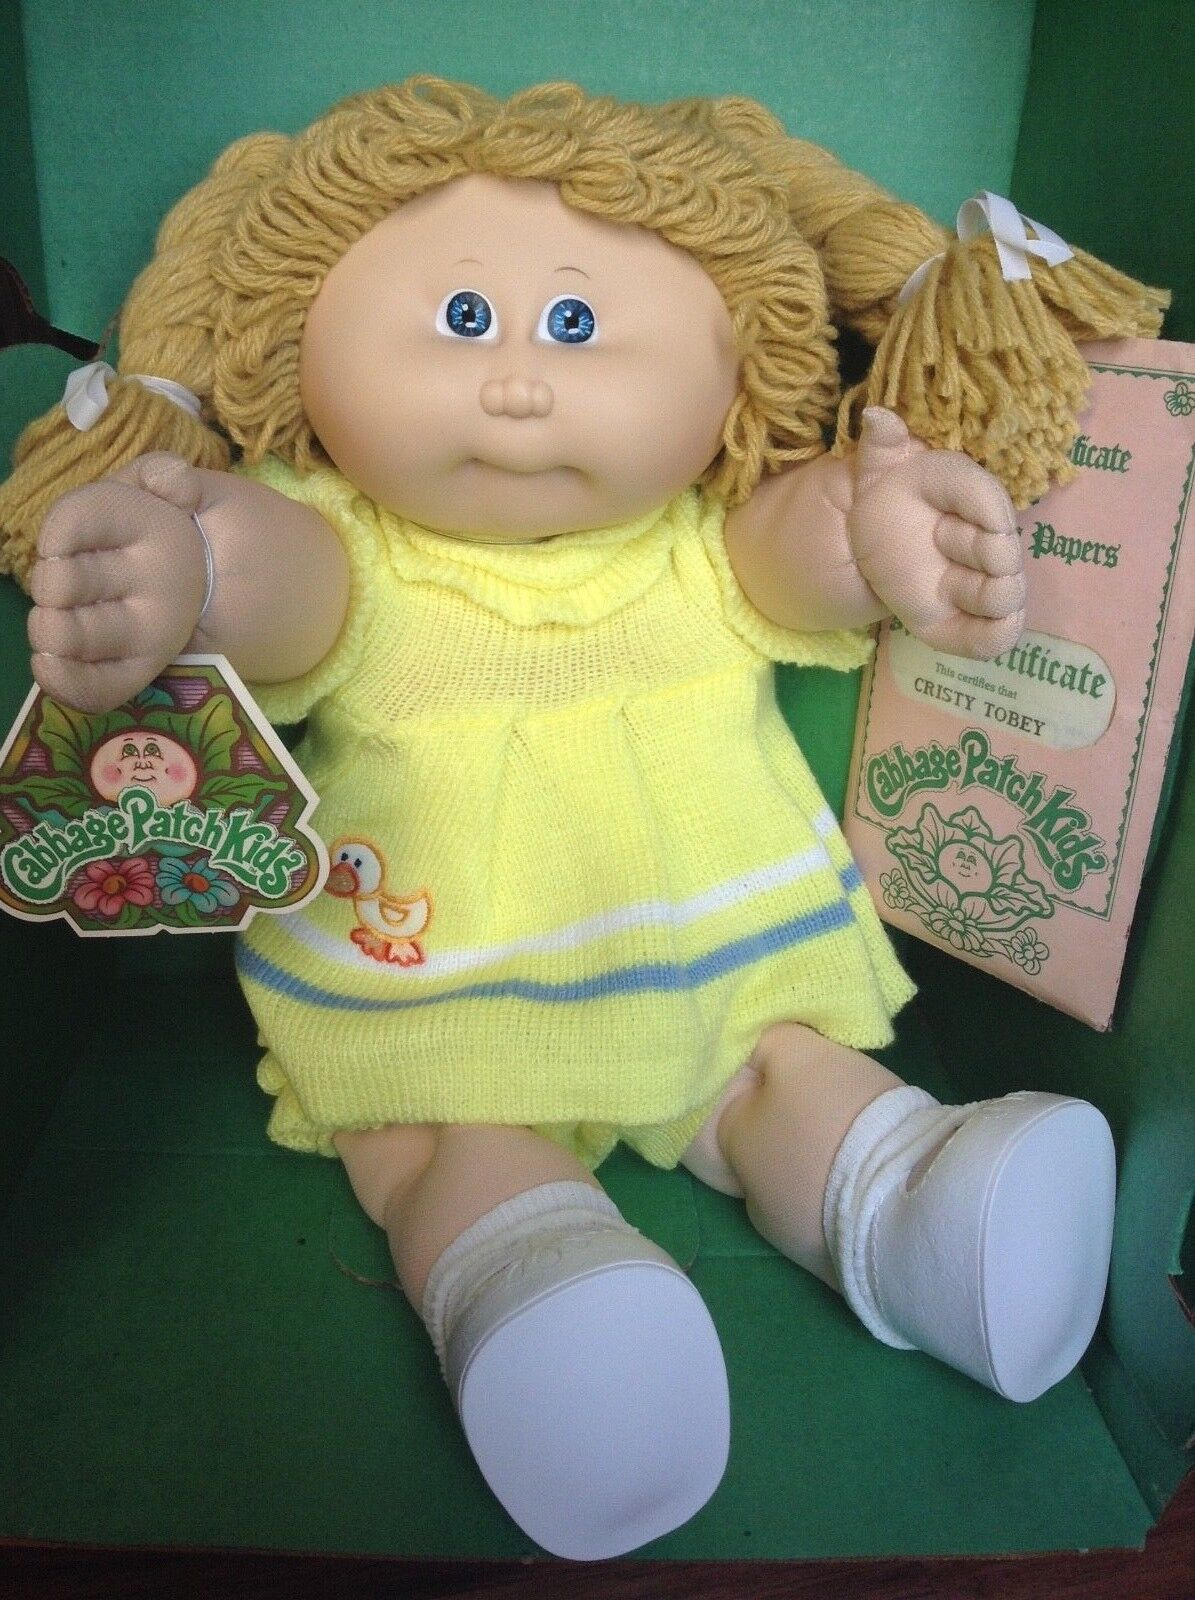 1985 CABBAGE PATCH KIDS 16  doll COLECO in box Cristy Tobey - NEW